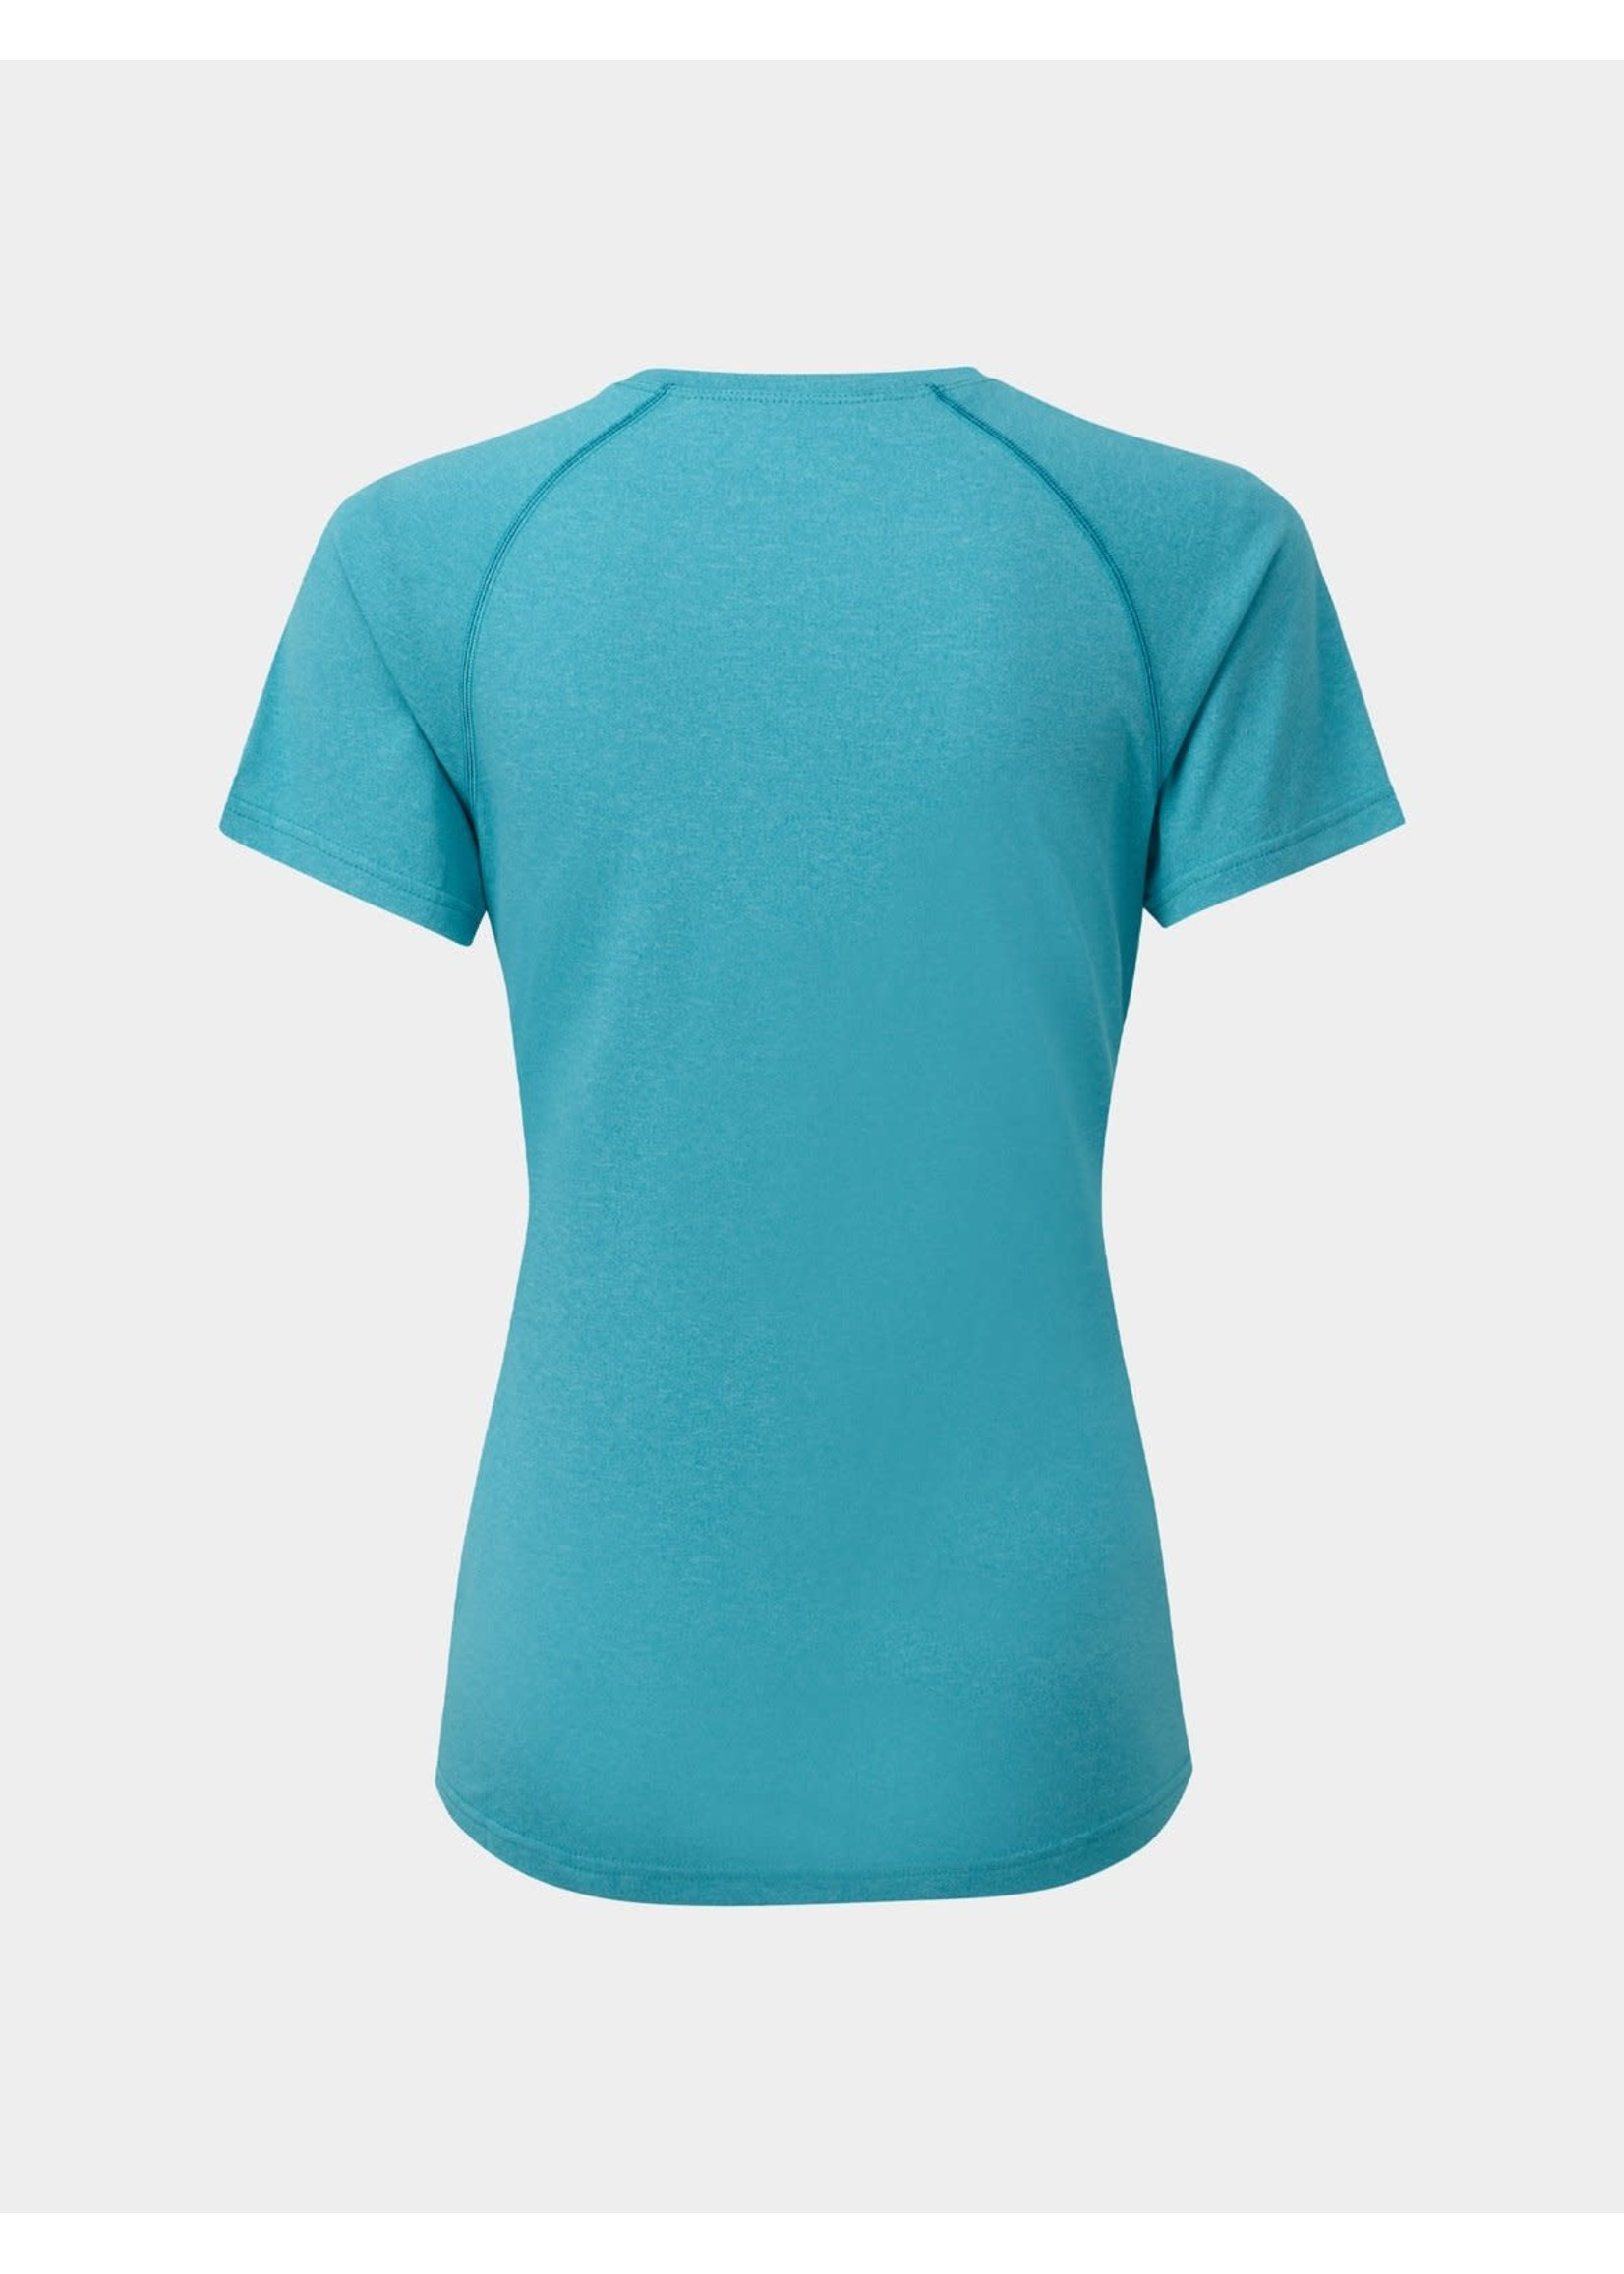 Ronhill Ronhill Core S/S Tee Ladies - Spa Green (2021)